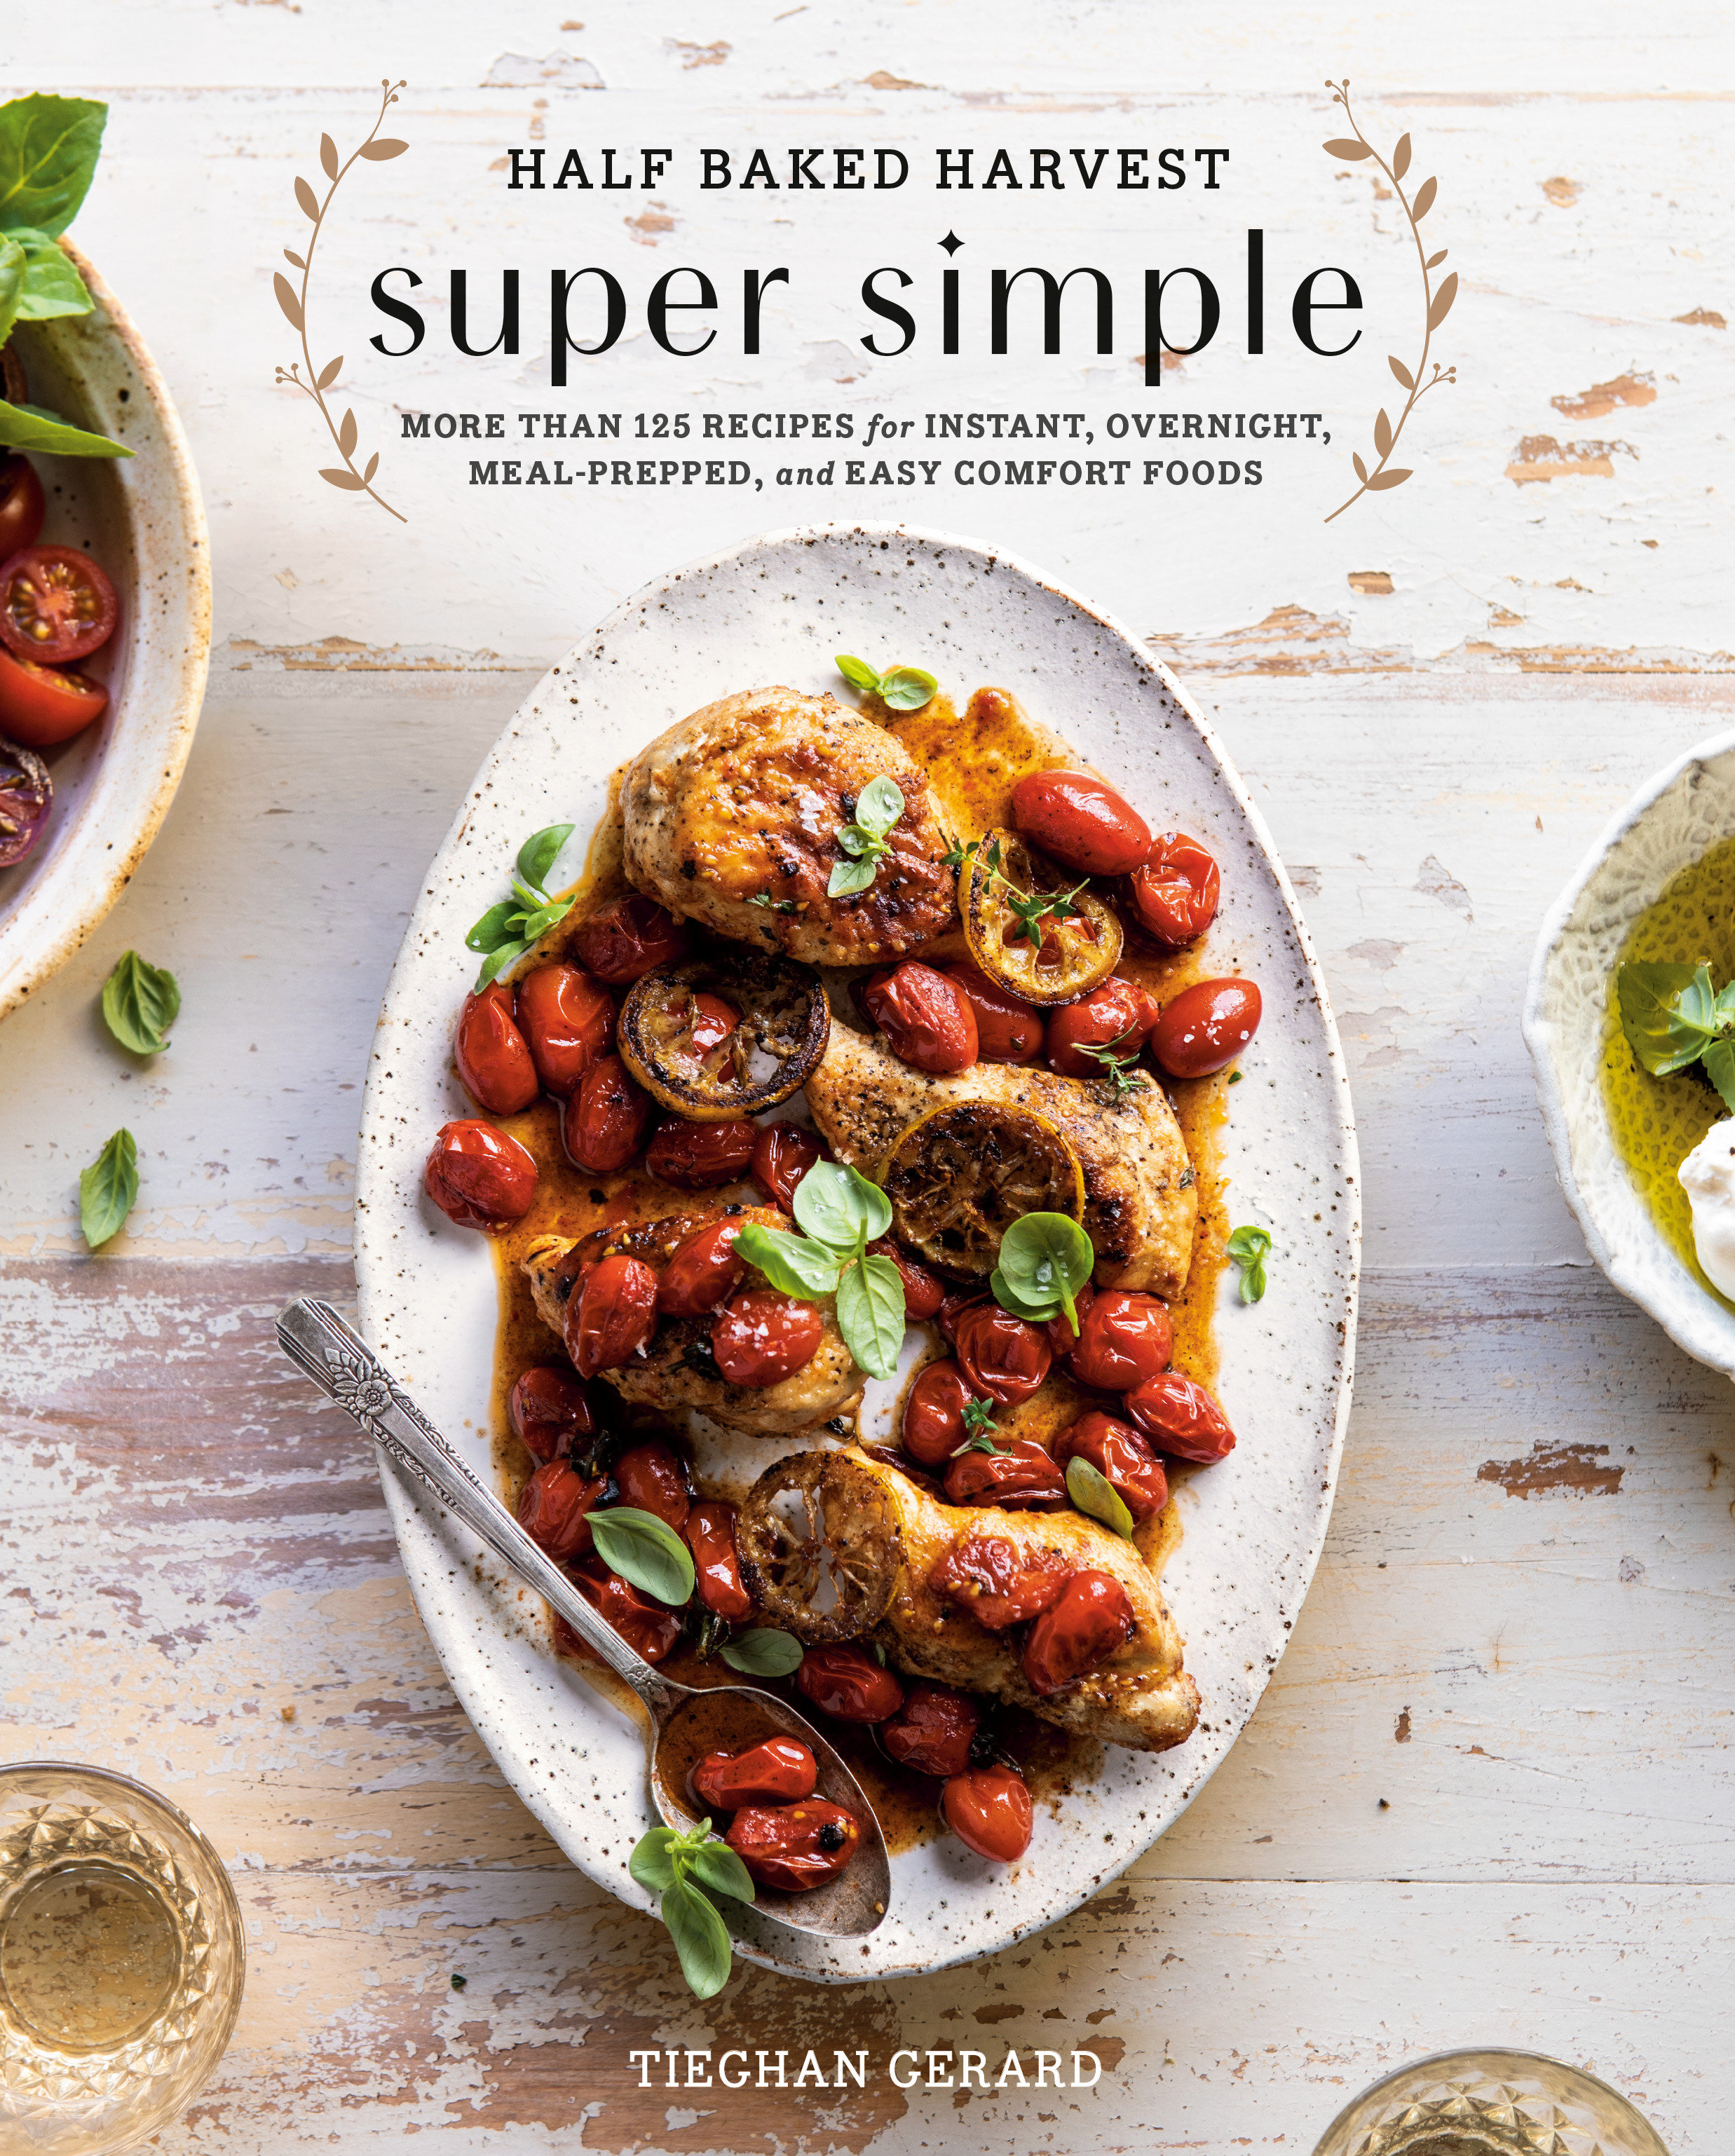 Half baked harvest super simple more than 125 recipes for instant, overnight, meal-prepped, and easy comfort foods cover image